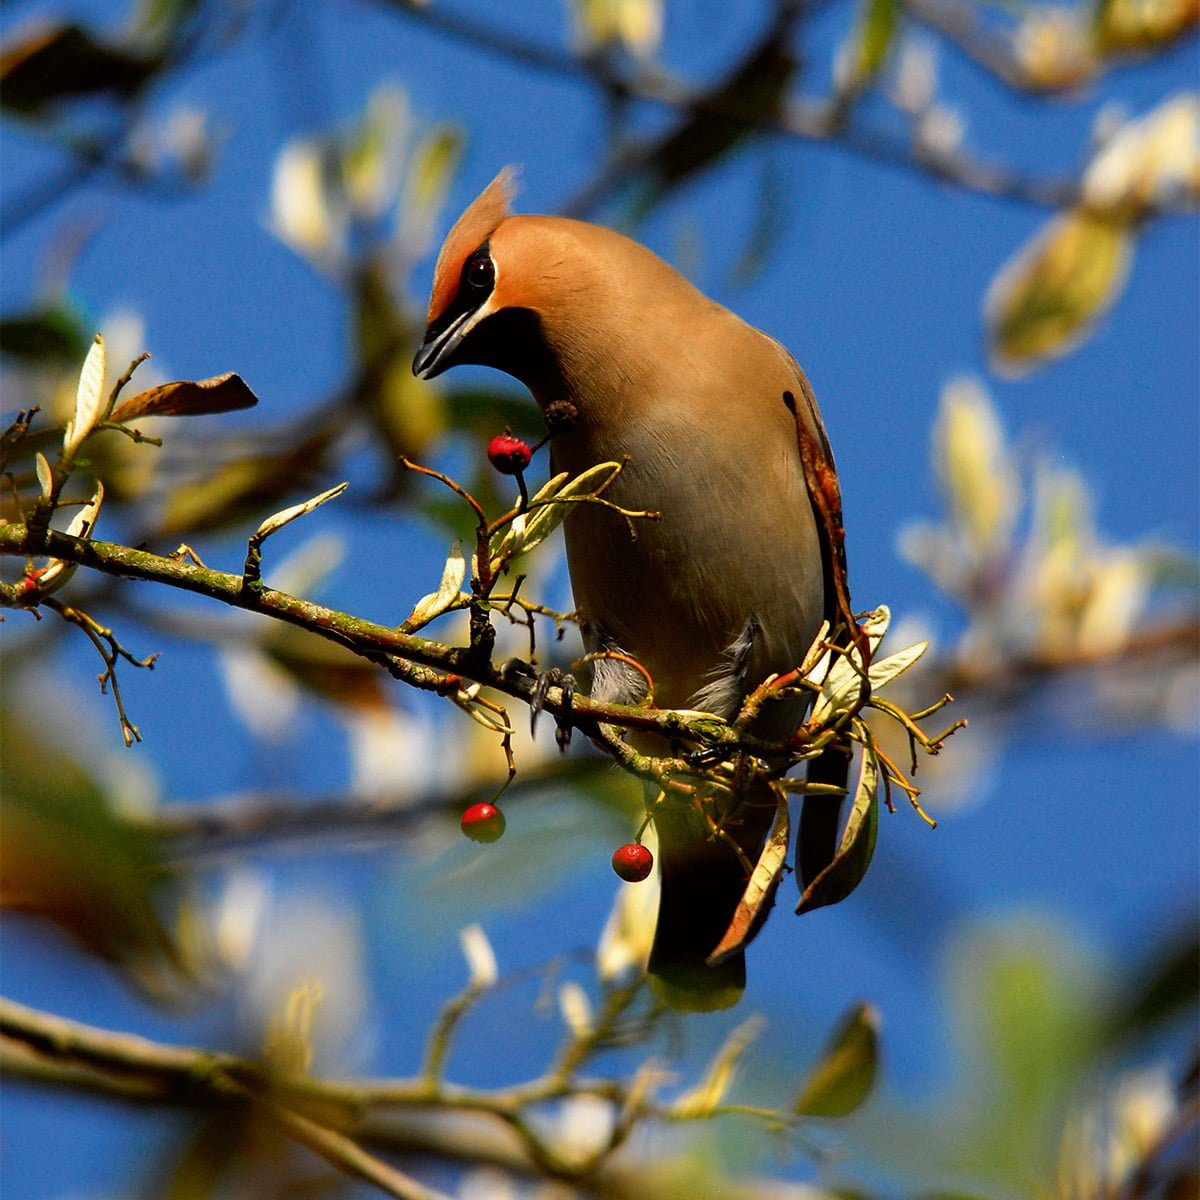 Waxwing eating berries from tree